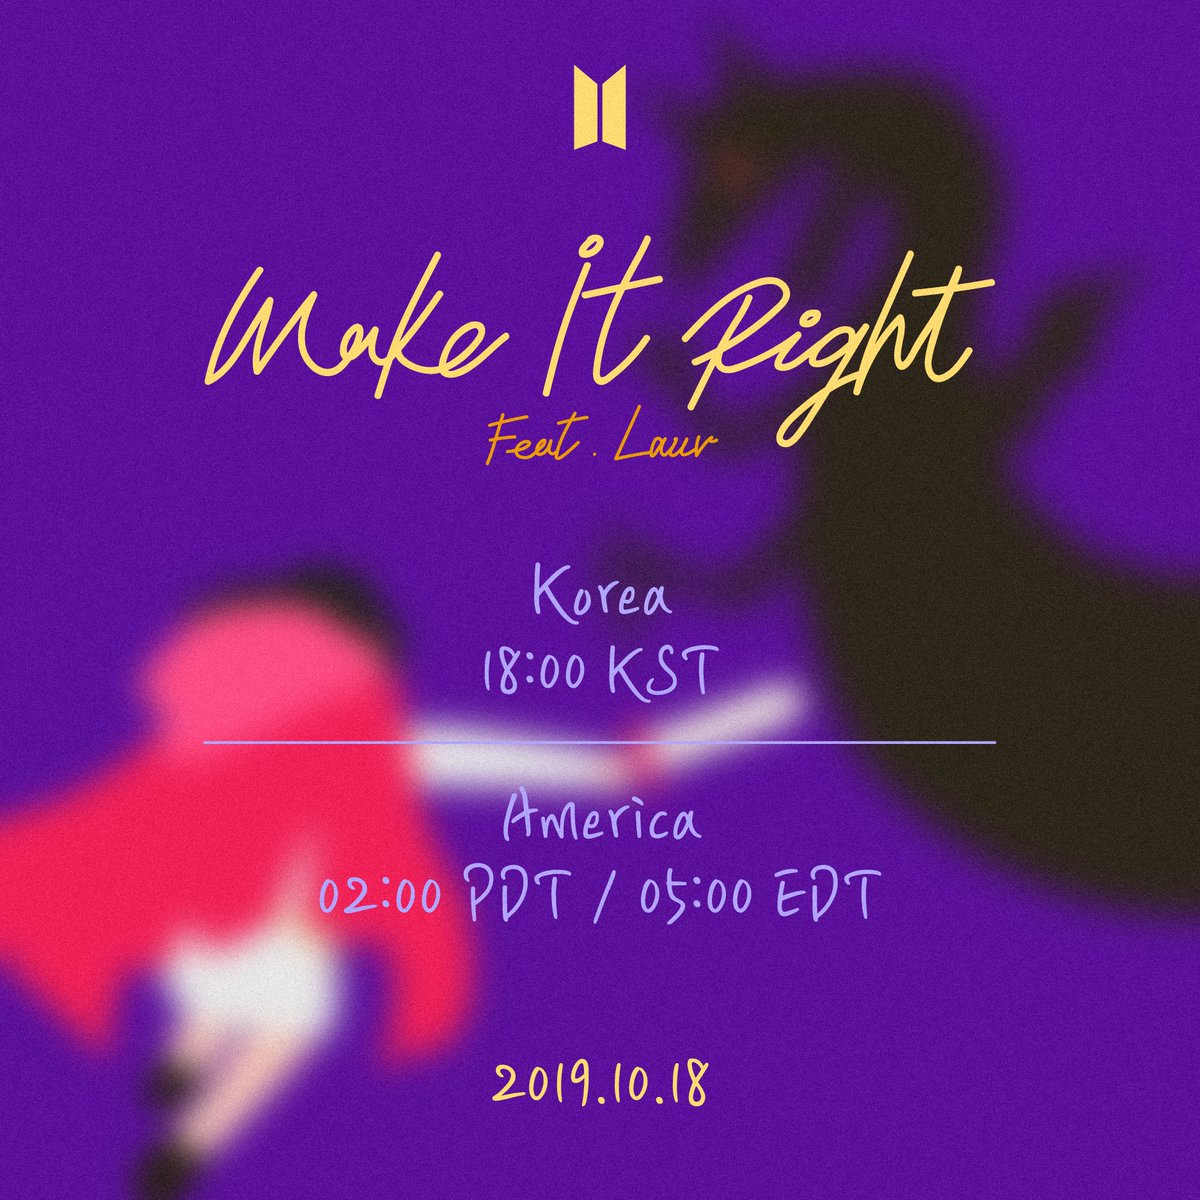 RT @BigHitEnt: <Make It Right (feat. Lauv)> 발매 안내  #BTS #방탄소년단 #MakeItRight https://t.co/4ukhjH6lwg